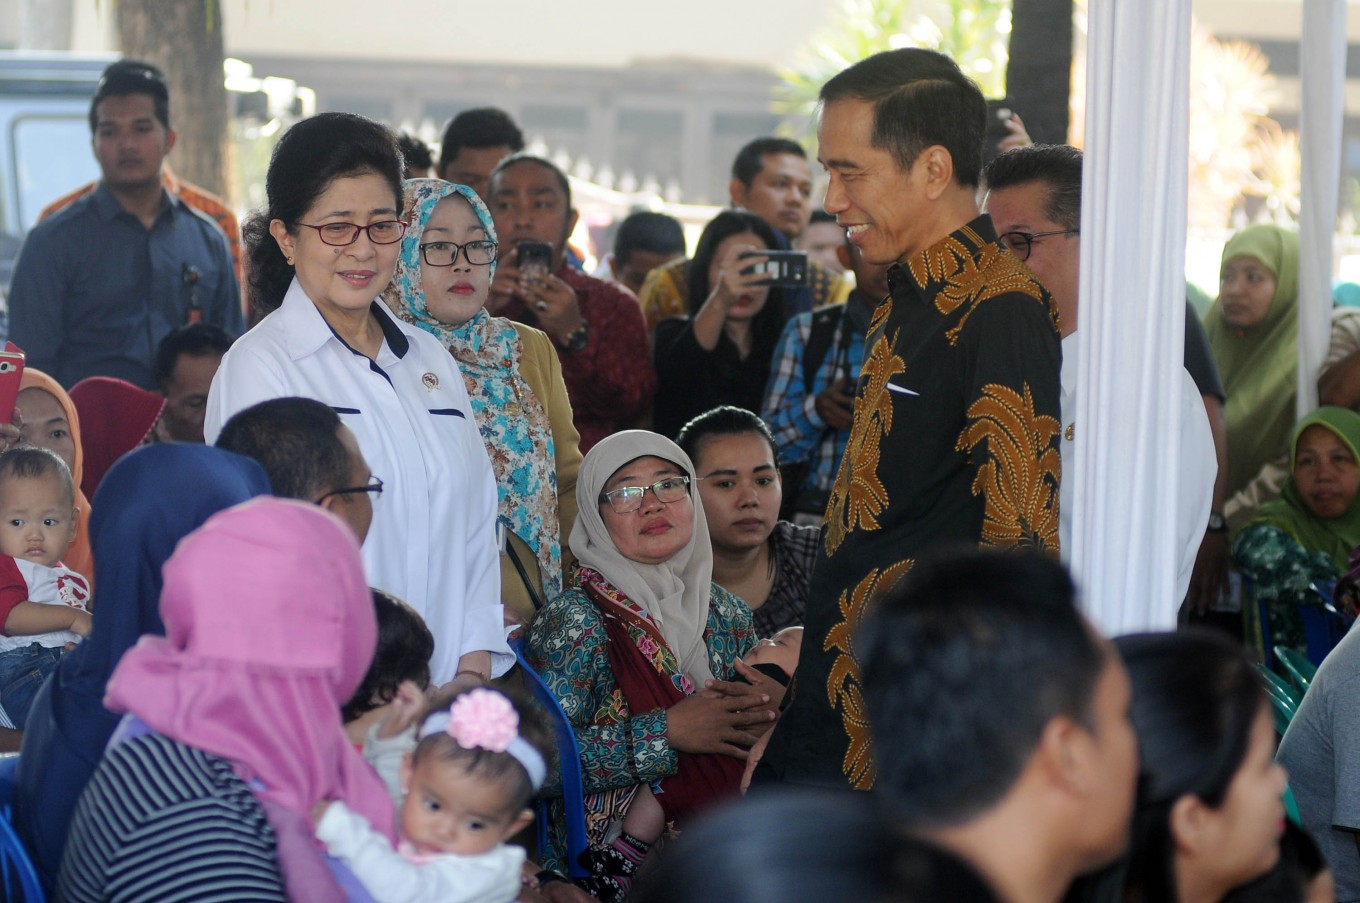 No shortage of vaccines in Indonesia: Health Minister